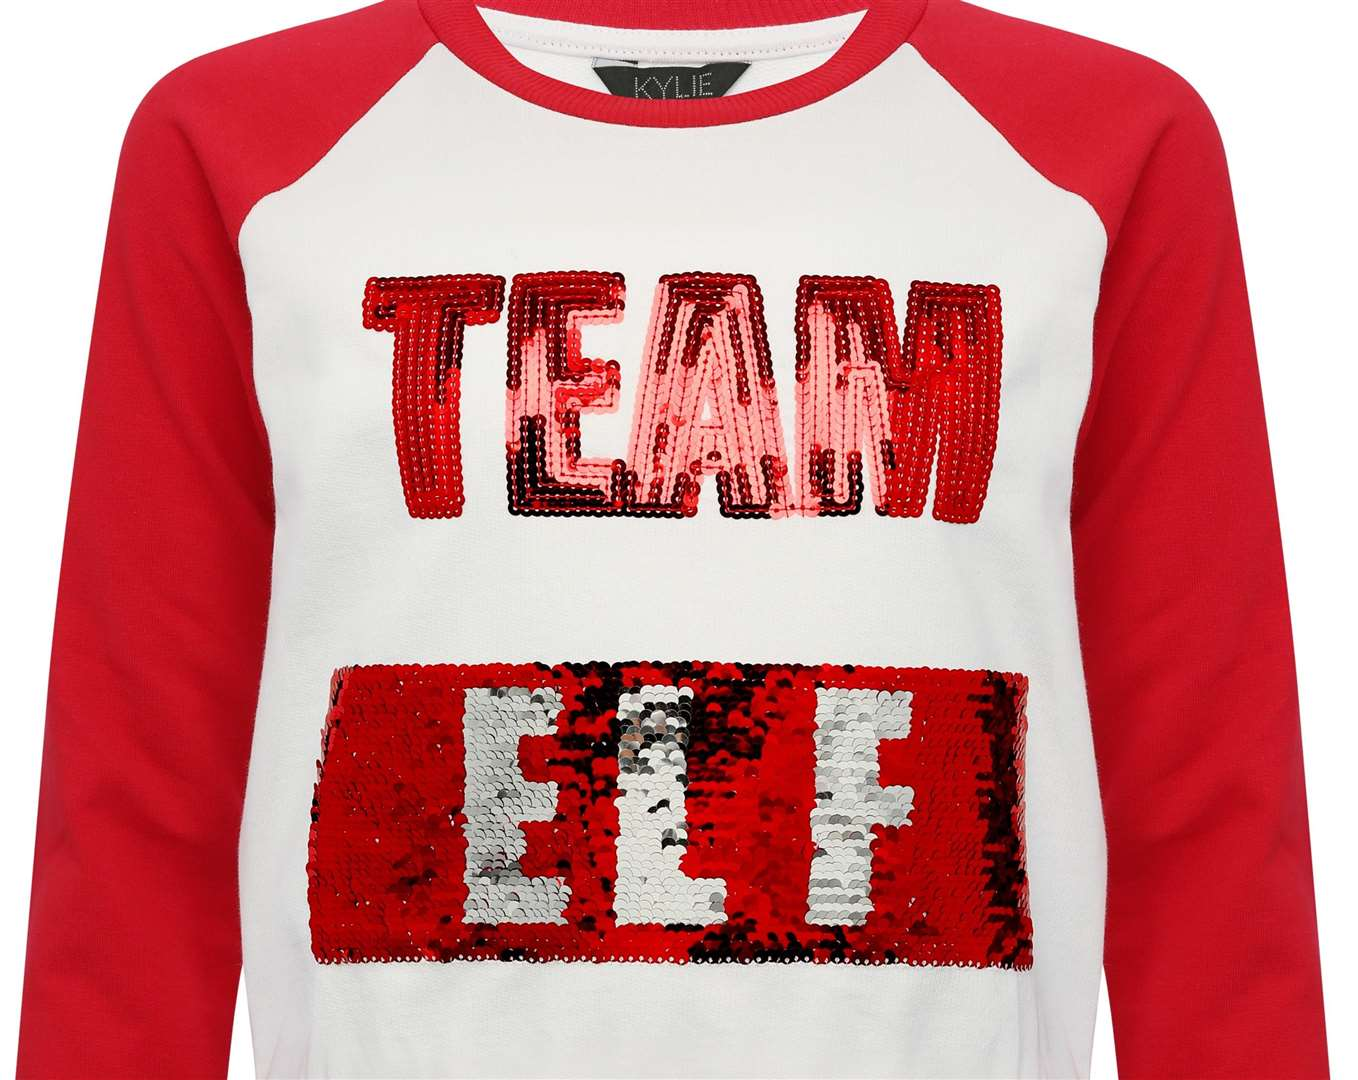 What kid doesn't want to be part of Team Elf? Sign them up to the squad at M&Co where this jumper is £18 for wannabe elves aged nine to 13.